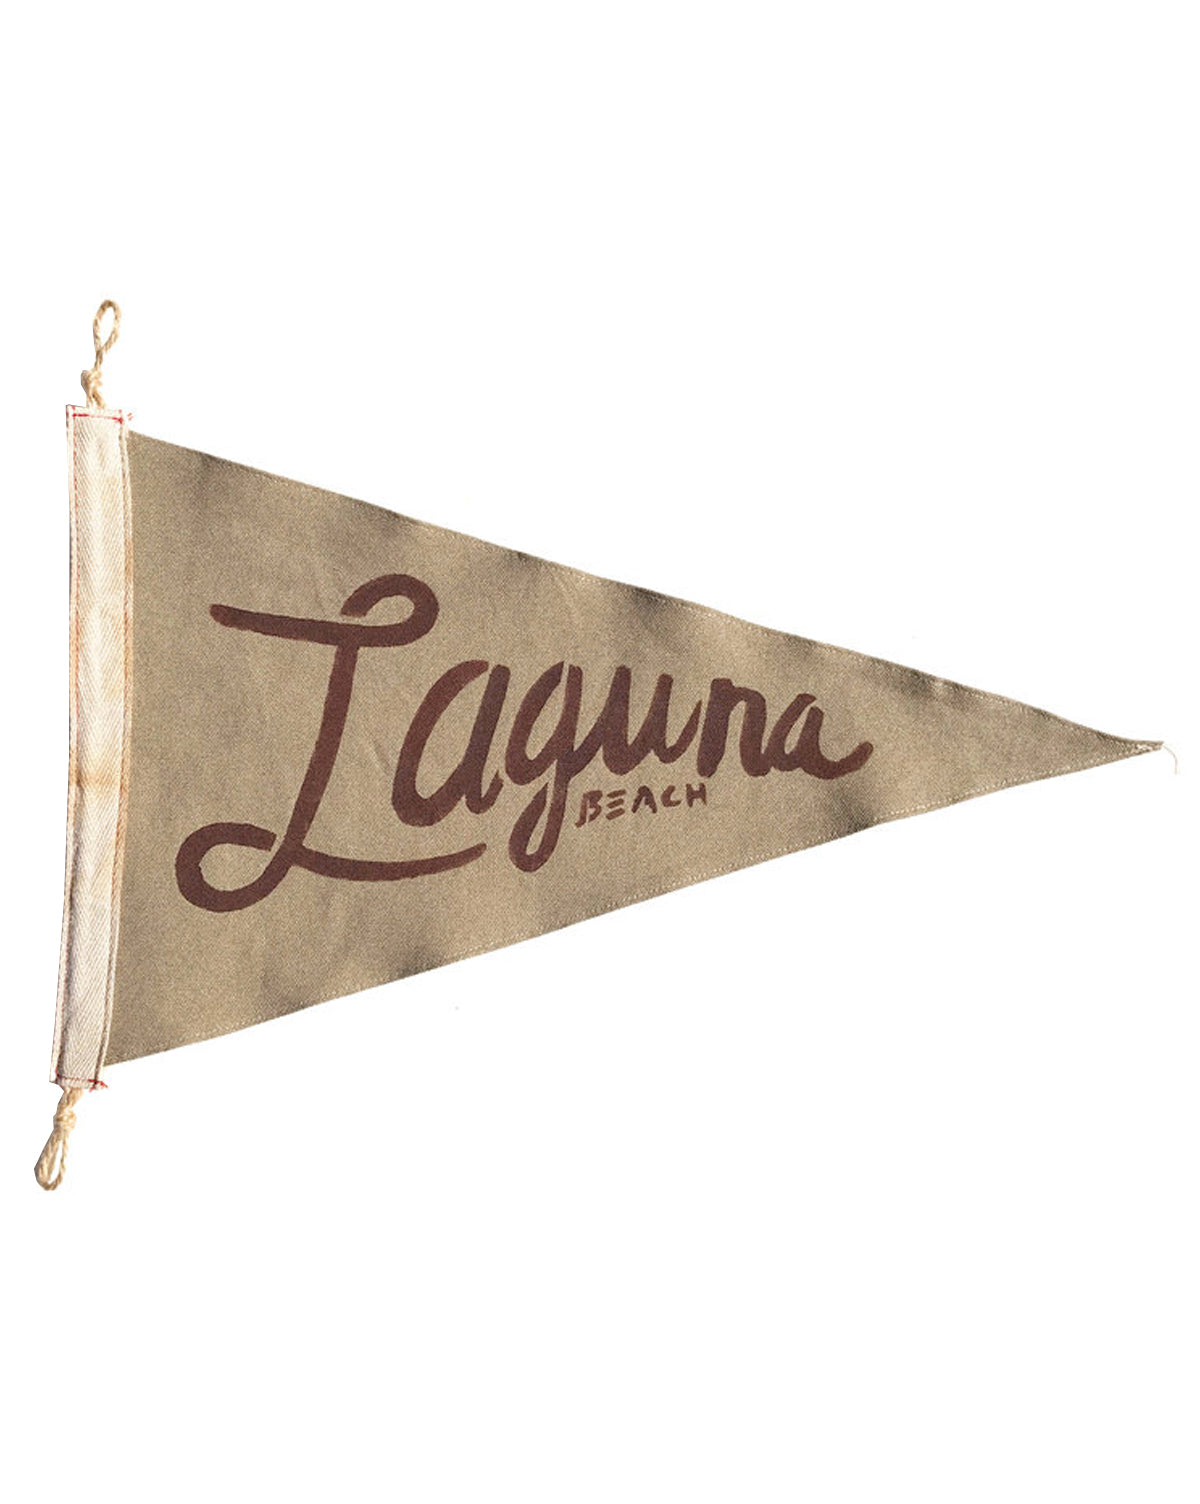 Laguna Beach Pennant – McGee & Co.